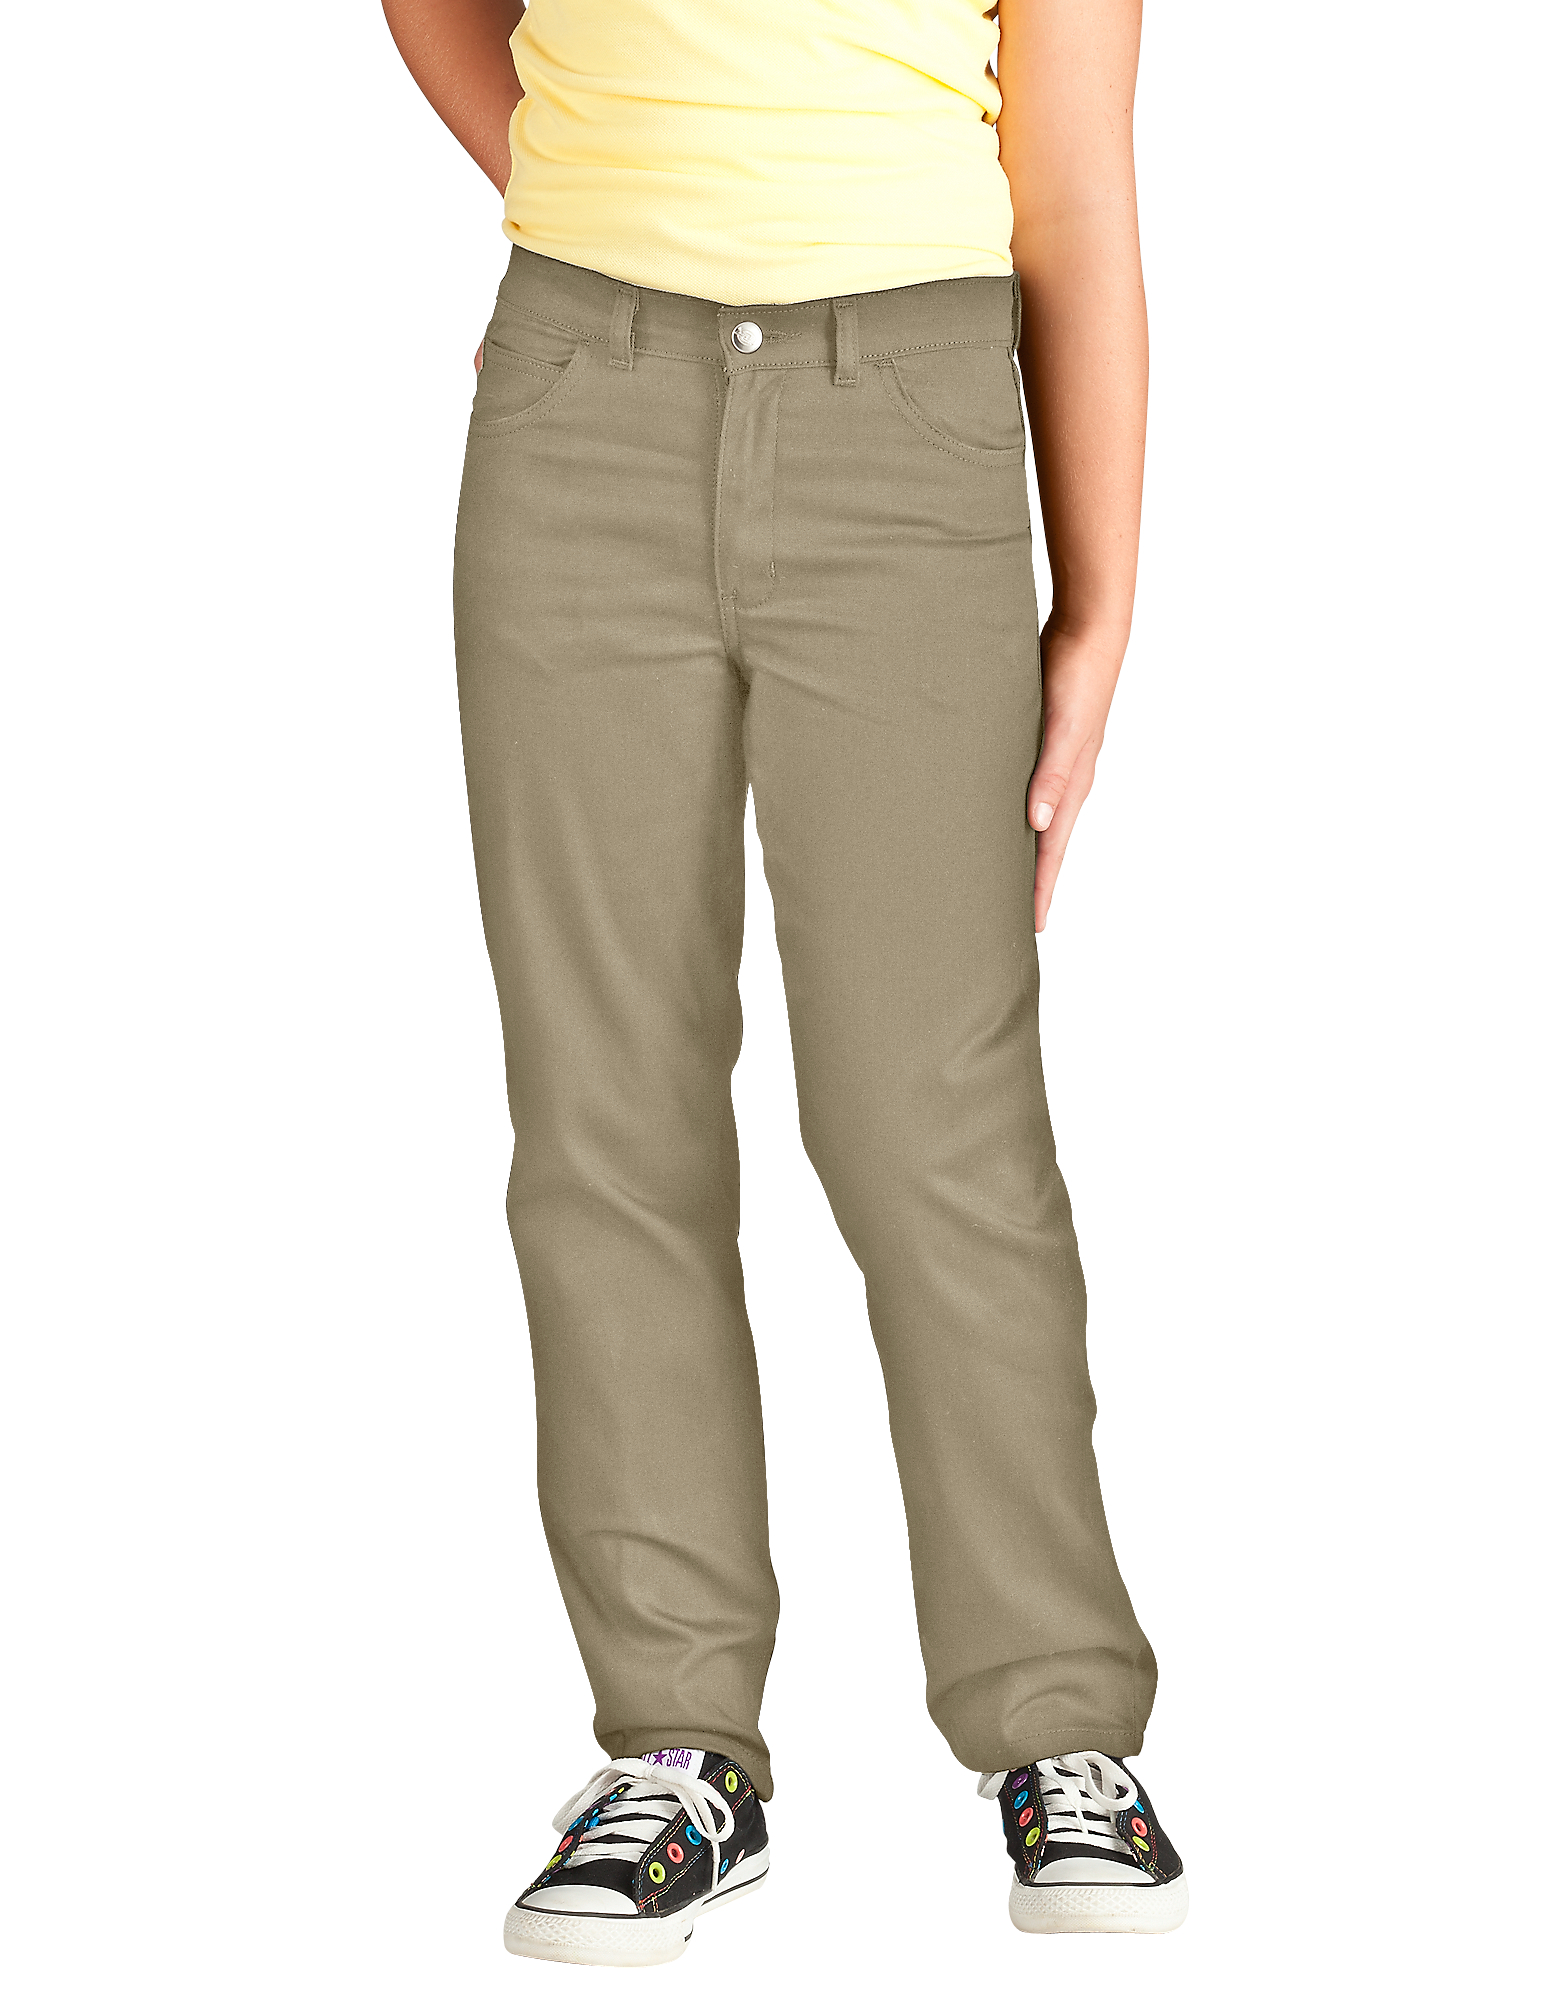 Girls' Skinny Fit Straight Leg 5-Pocket Stretch Twill Pants, 7-20 - Desert Khaki (DS)